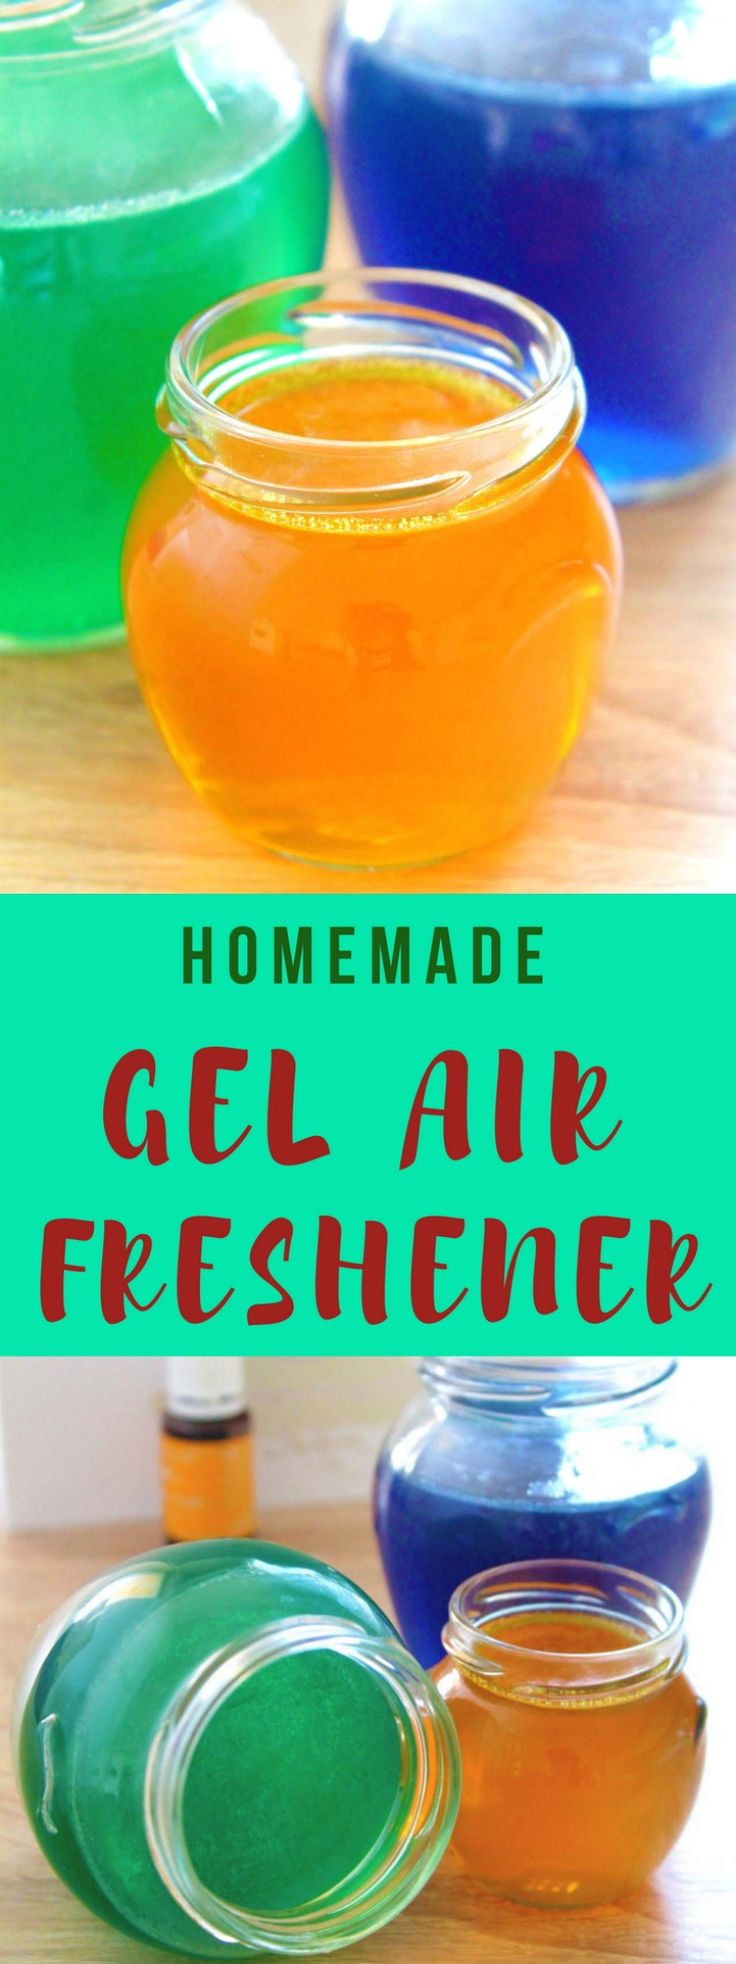 Best 10 diy air fresheners ideas on pinterest air freshener homemade air freshener and - Homemade air fresheners ...